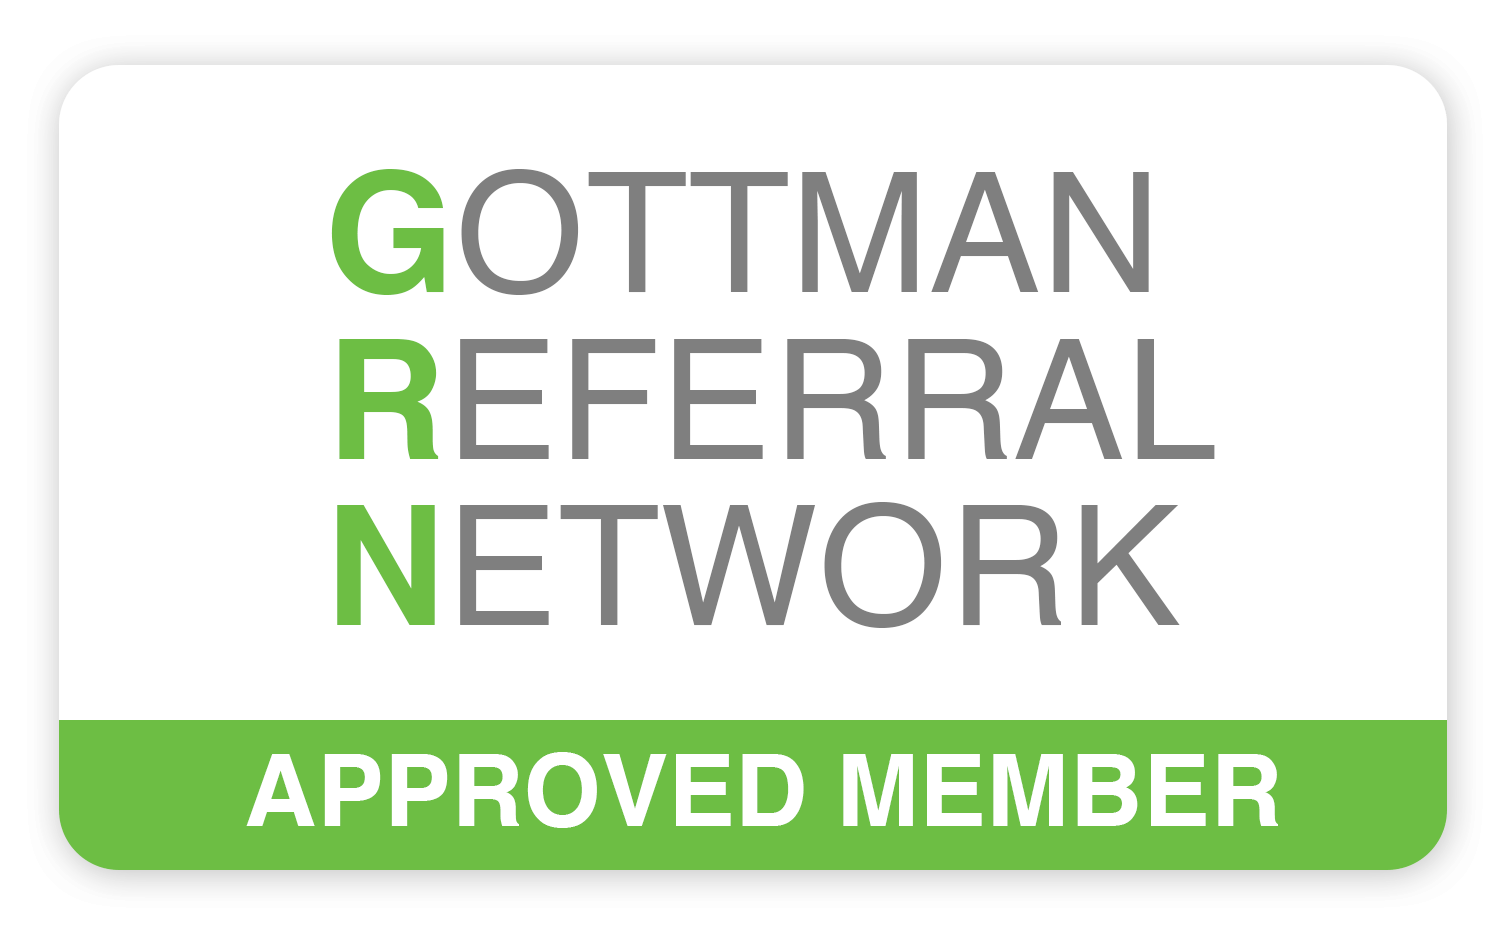 Dorothee Ischler's profile on the Gottman Referral Network